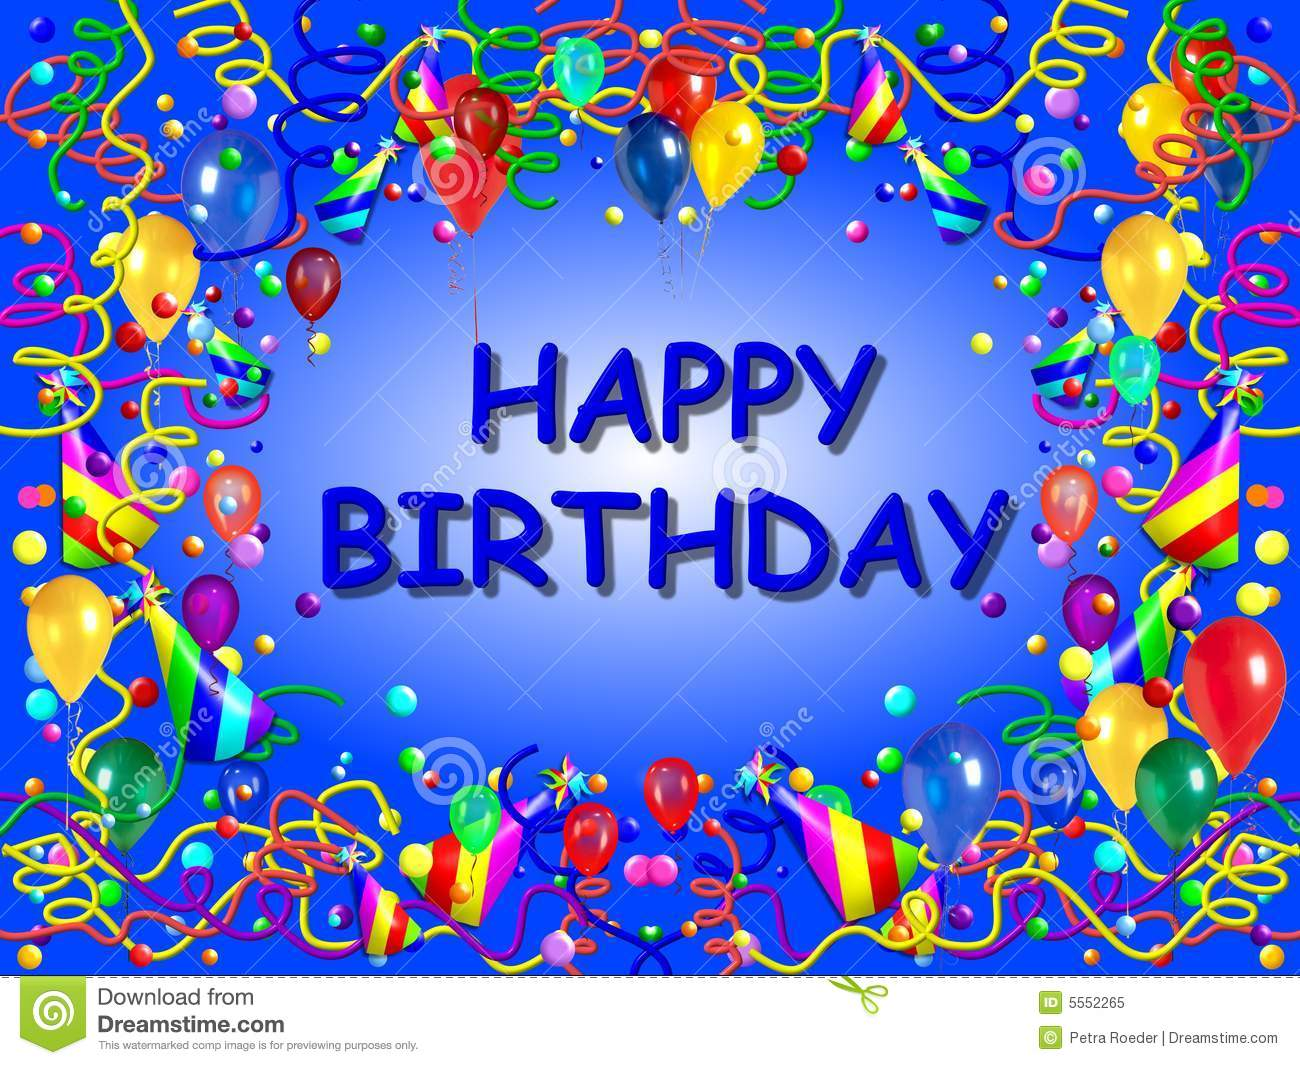 Bday background images - Blue Birthday Background Royalty Free Stock Photo